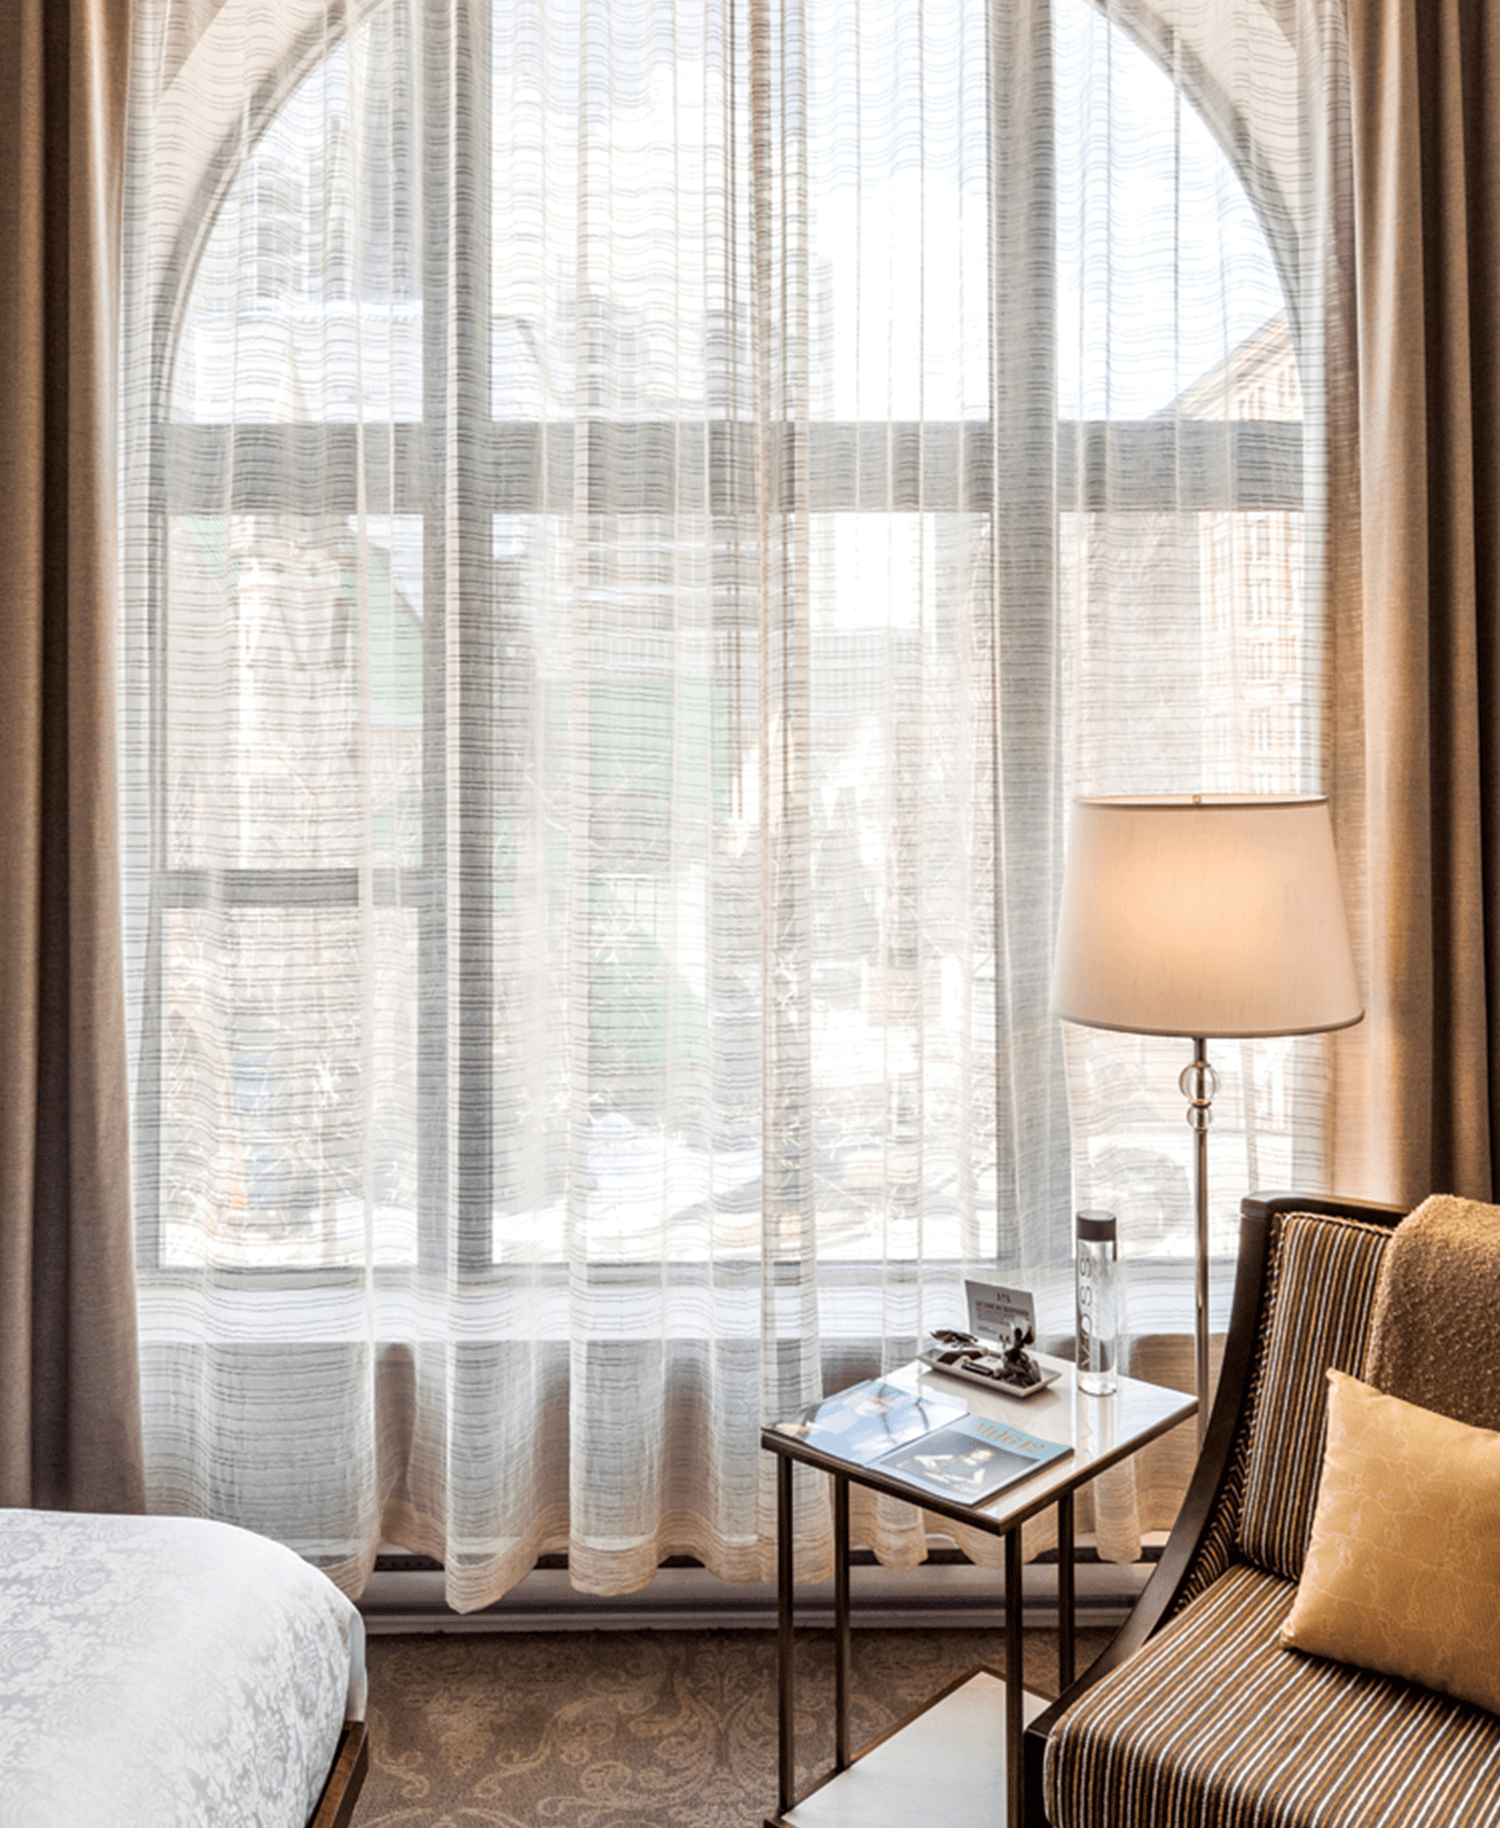 Unusually high ceilings and grand arched windows distinguish many of the rooms in the oldest part of the Hotel Birks Beaux Arts building